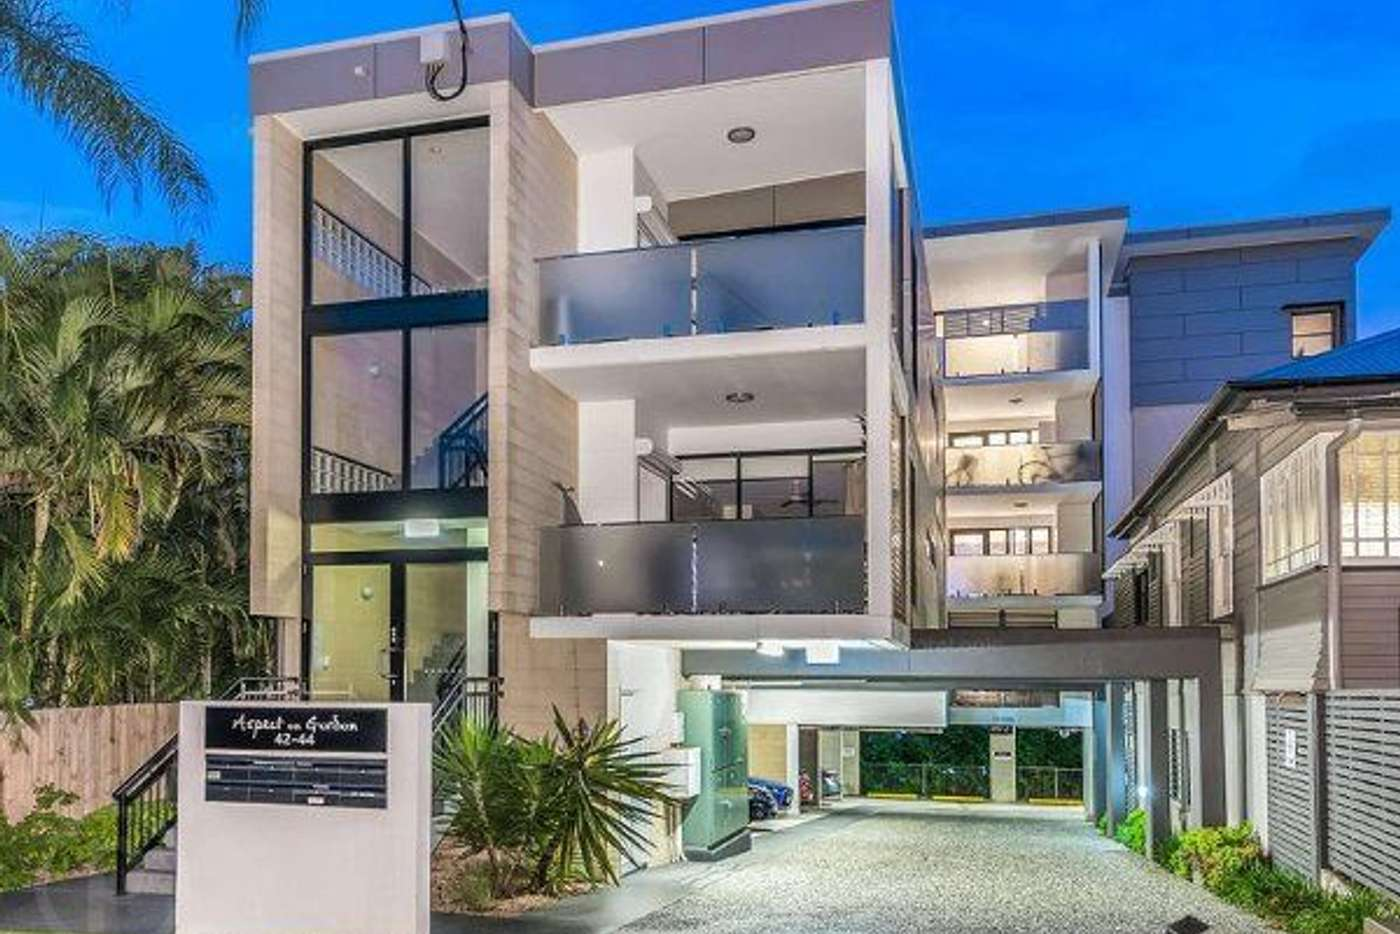 Main view of Homely apartment listing, 6/42-44 Gordon Street, Milton QLD 4064